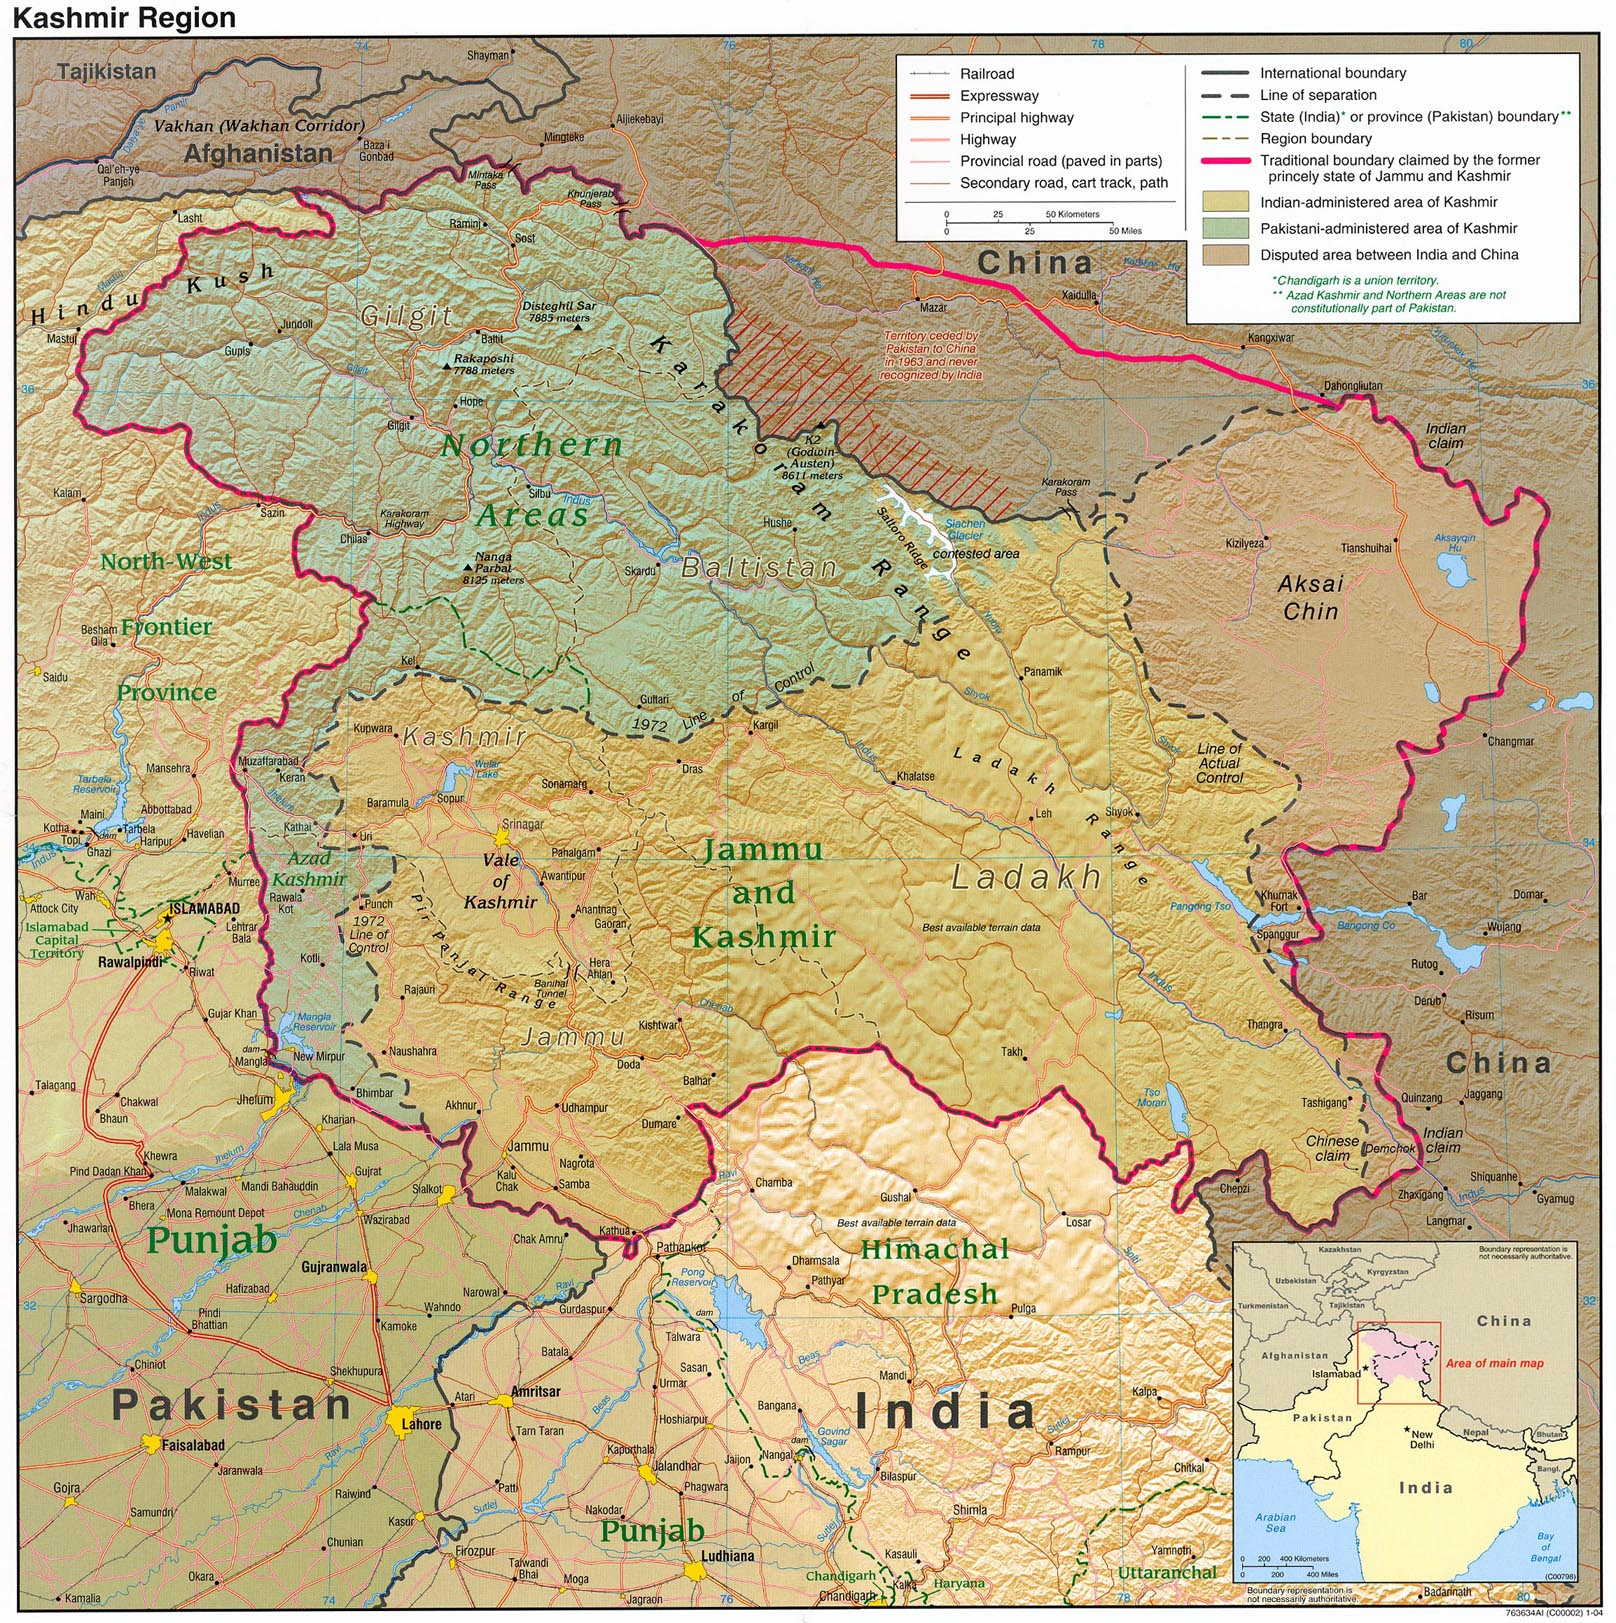 Map Of The Kashmir Region Himalayan Images - World physical map hd pdf